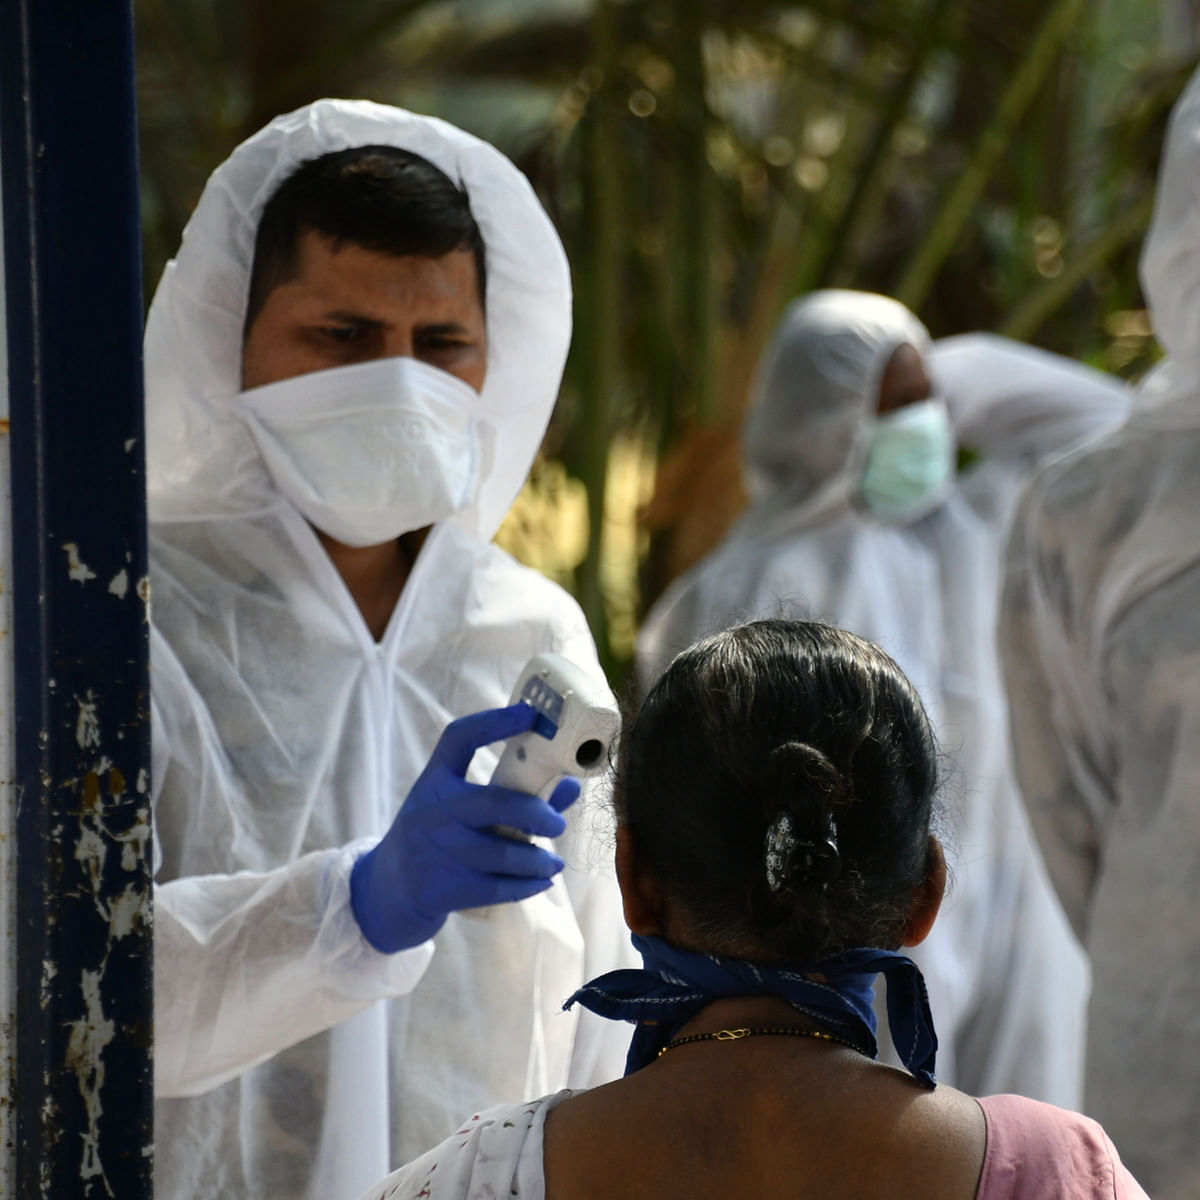 Coronavirus latest updates: India records 36,011 new cases, tally rises to 96.44 lakh - Here is state-wise data